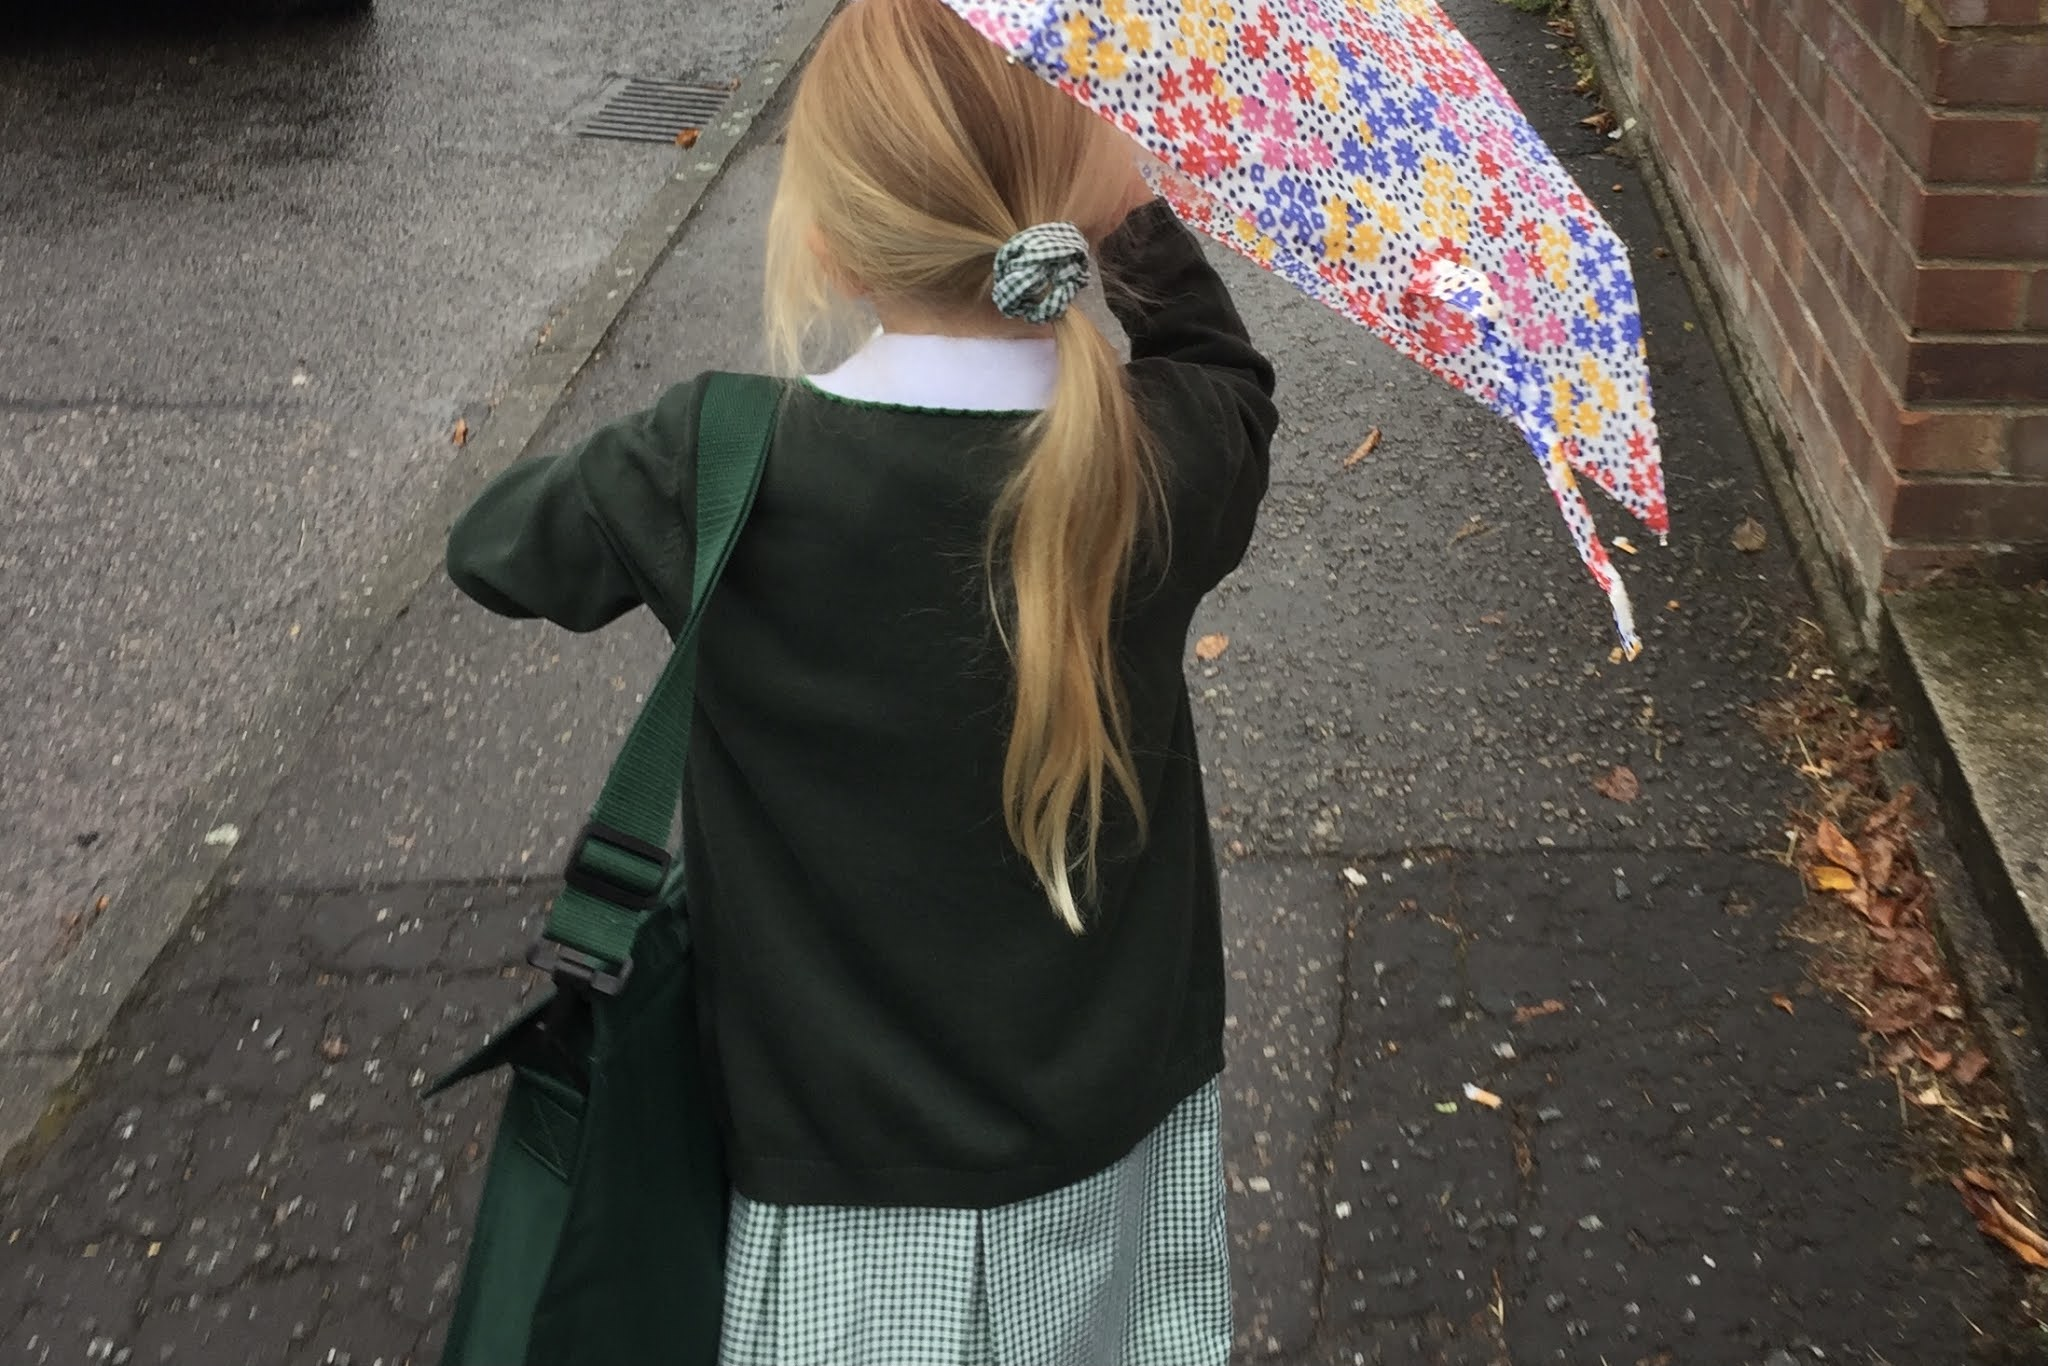 A school child going home from school in the rain in a bad mood